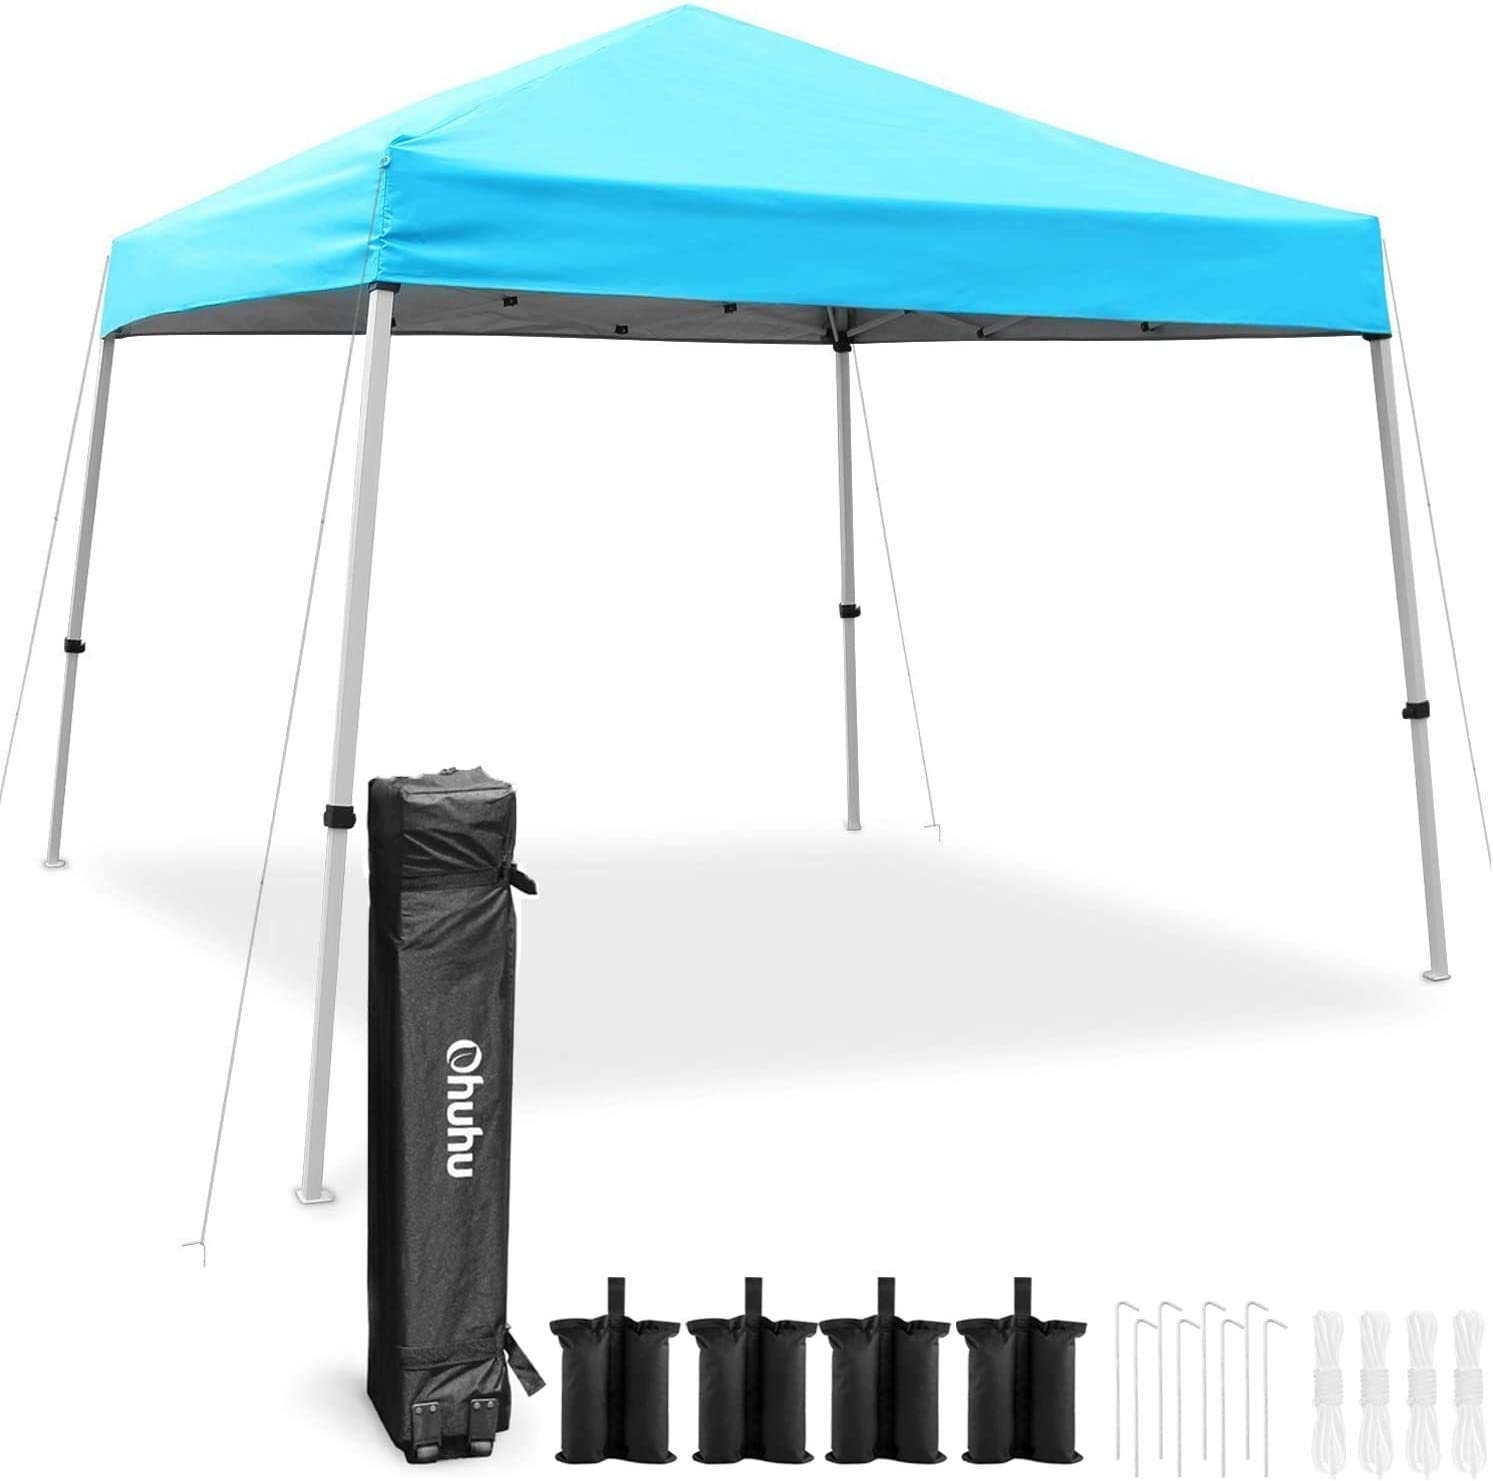 Ohuhu EZ Pop-Up Canopy Tent with Weight Bags Ropes Pegs, Slant Leg 10×10 FT Light Duty Reinforced Steel Frame Commercial Instant Shelter with 3 Adjustable Heights Easy-Carrying Wheeled Carry Bag